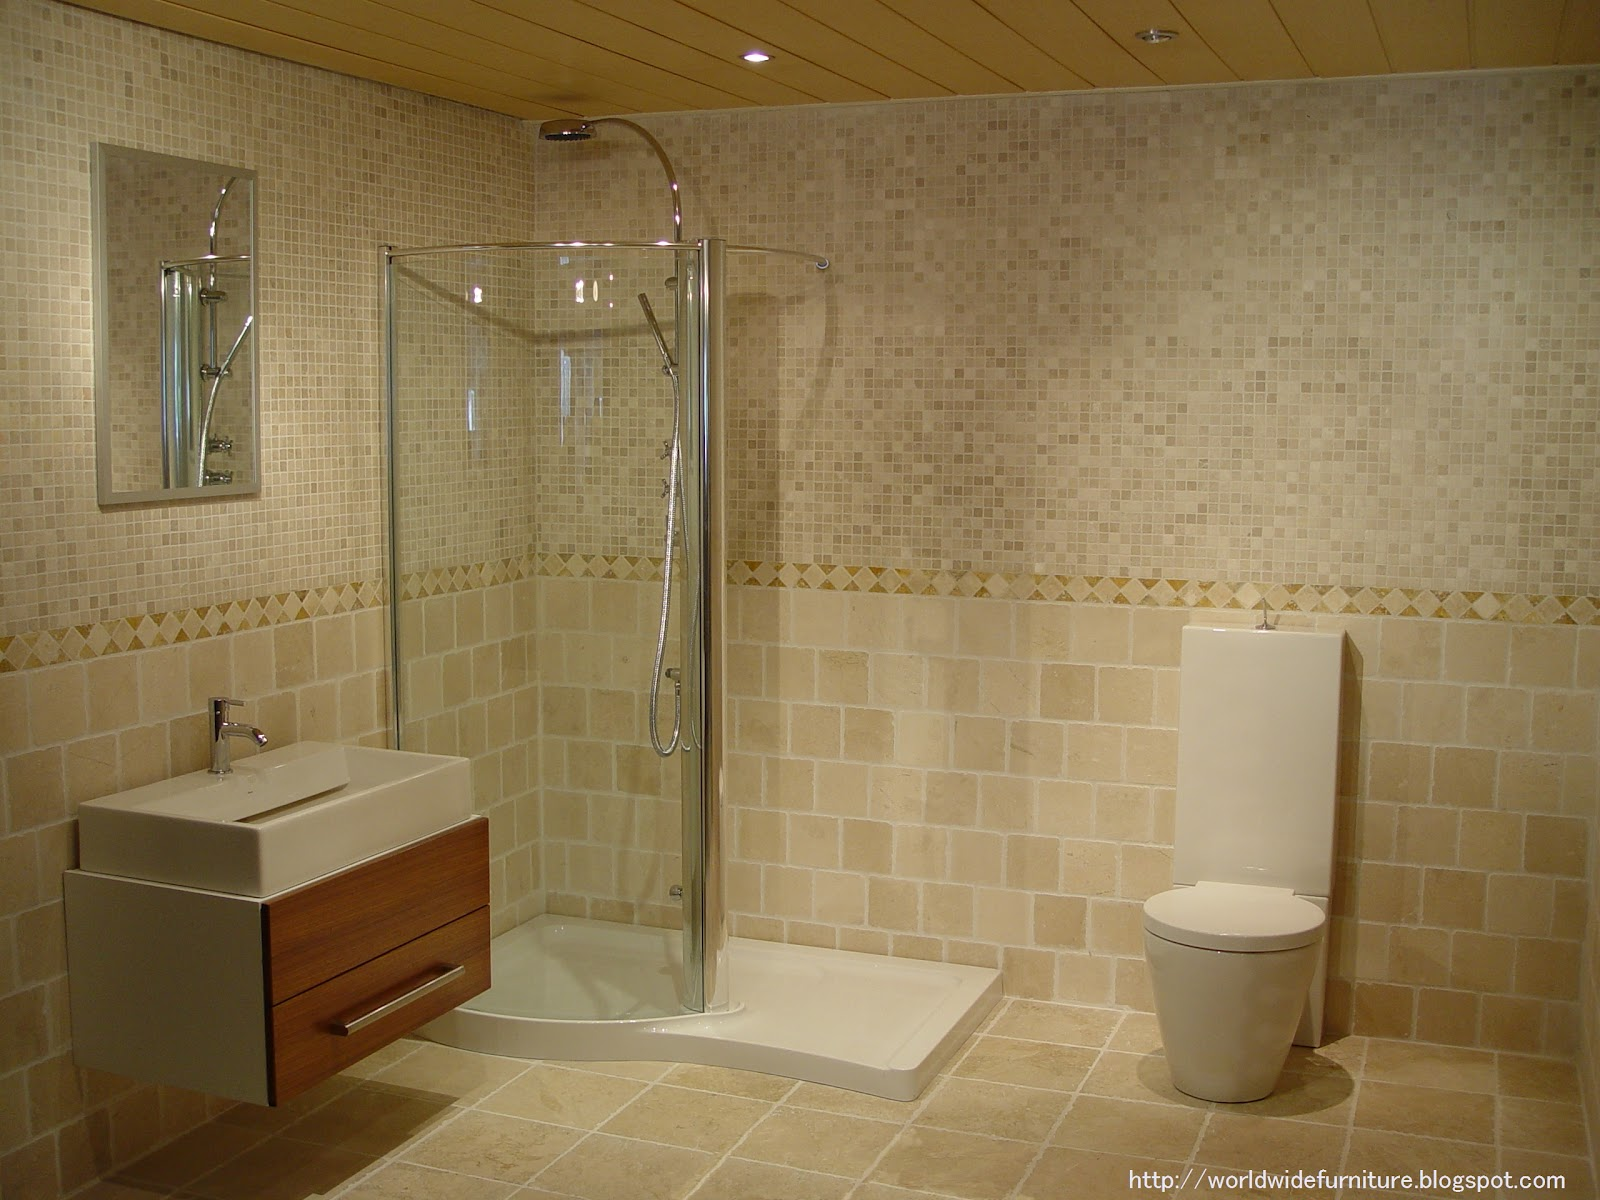 Choose Bathroom Paint Color And Bathroom Tile According To The Taste Of The  Individual, His Or Her Emotional State And The Feel You Would Like In Your  ...